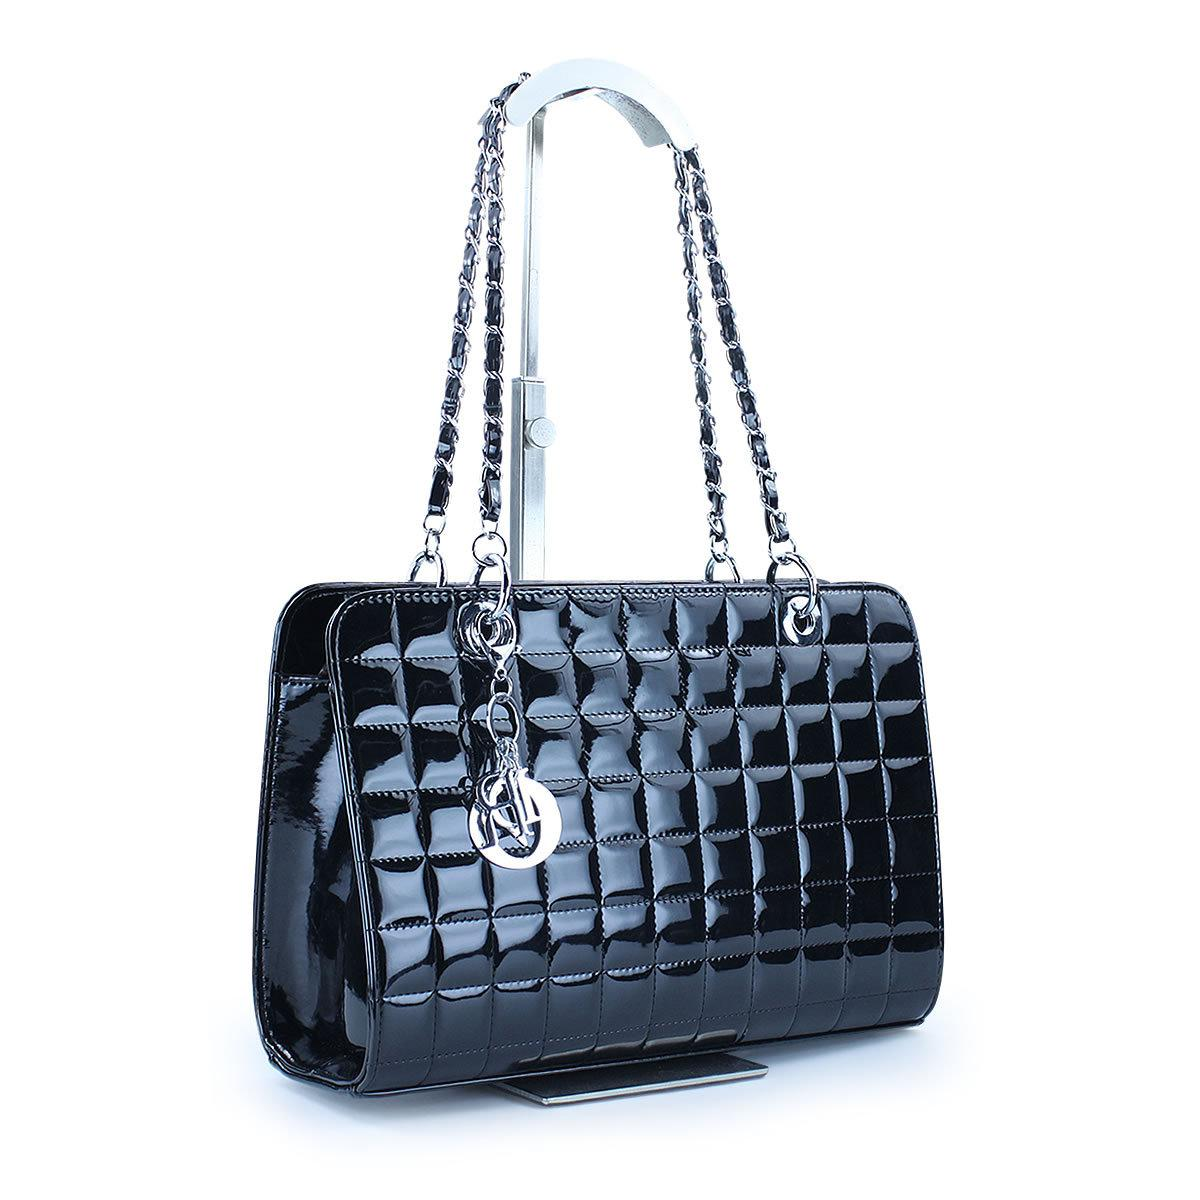 0269d0f9d15a Fashion Ladies Handbags Manufacturer   Manufacturer from Yiwu